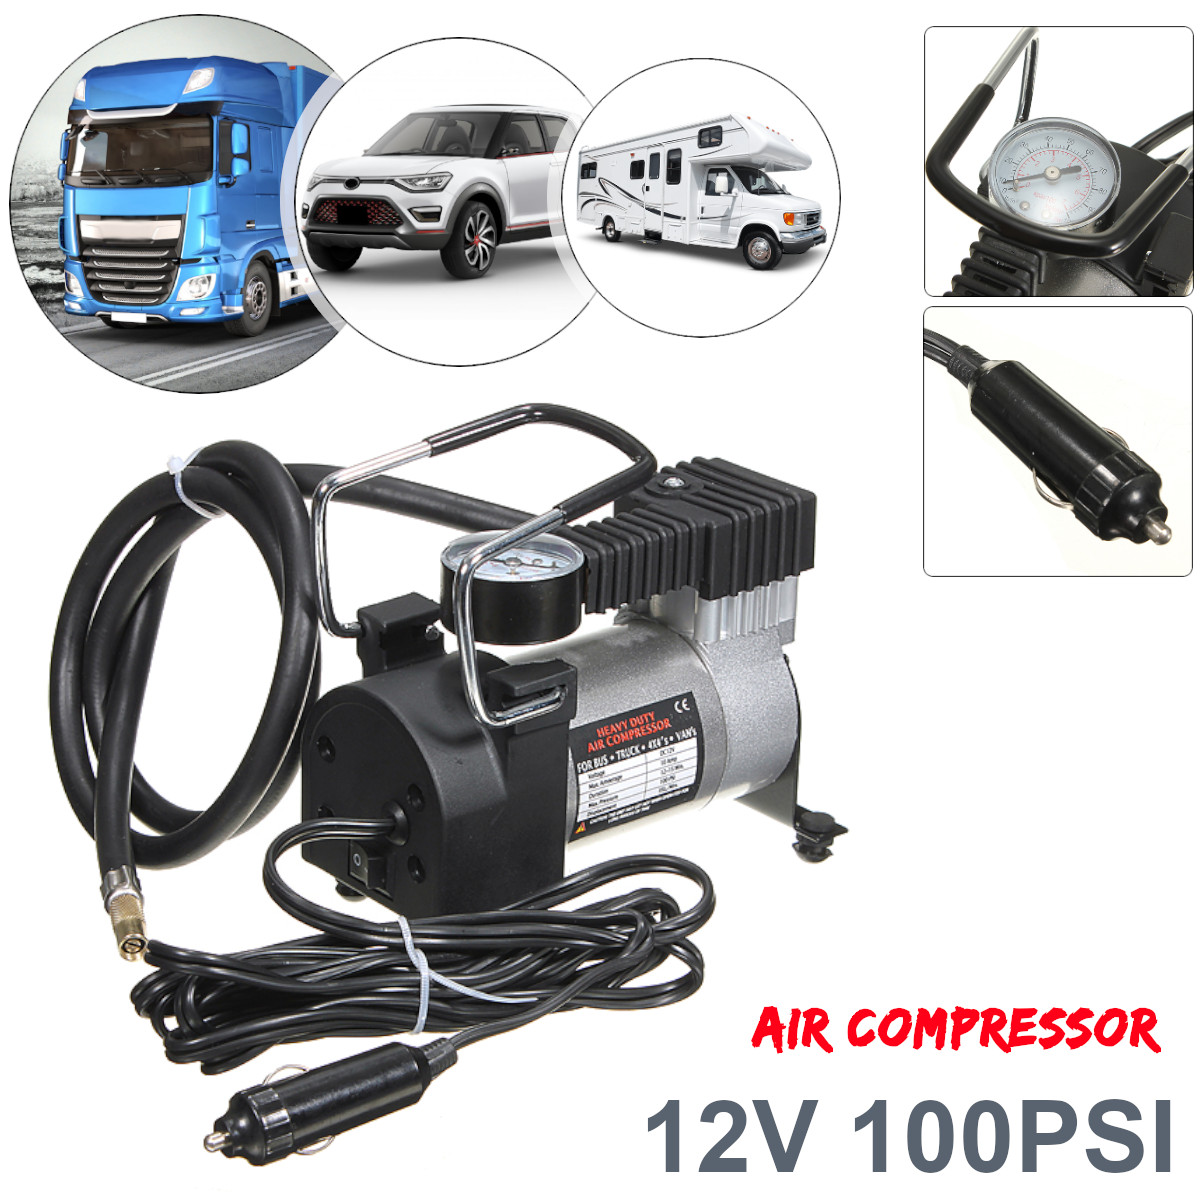 12V 100PSI Electronic Digital Portable Car Wheel Tire Inflatable Pump Inflator Air Compressor Inflating Machine